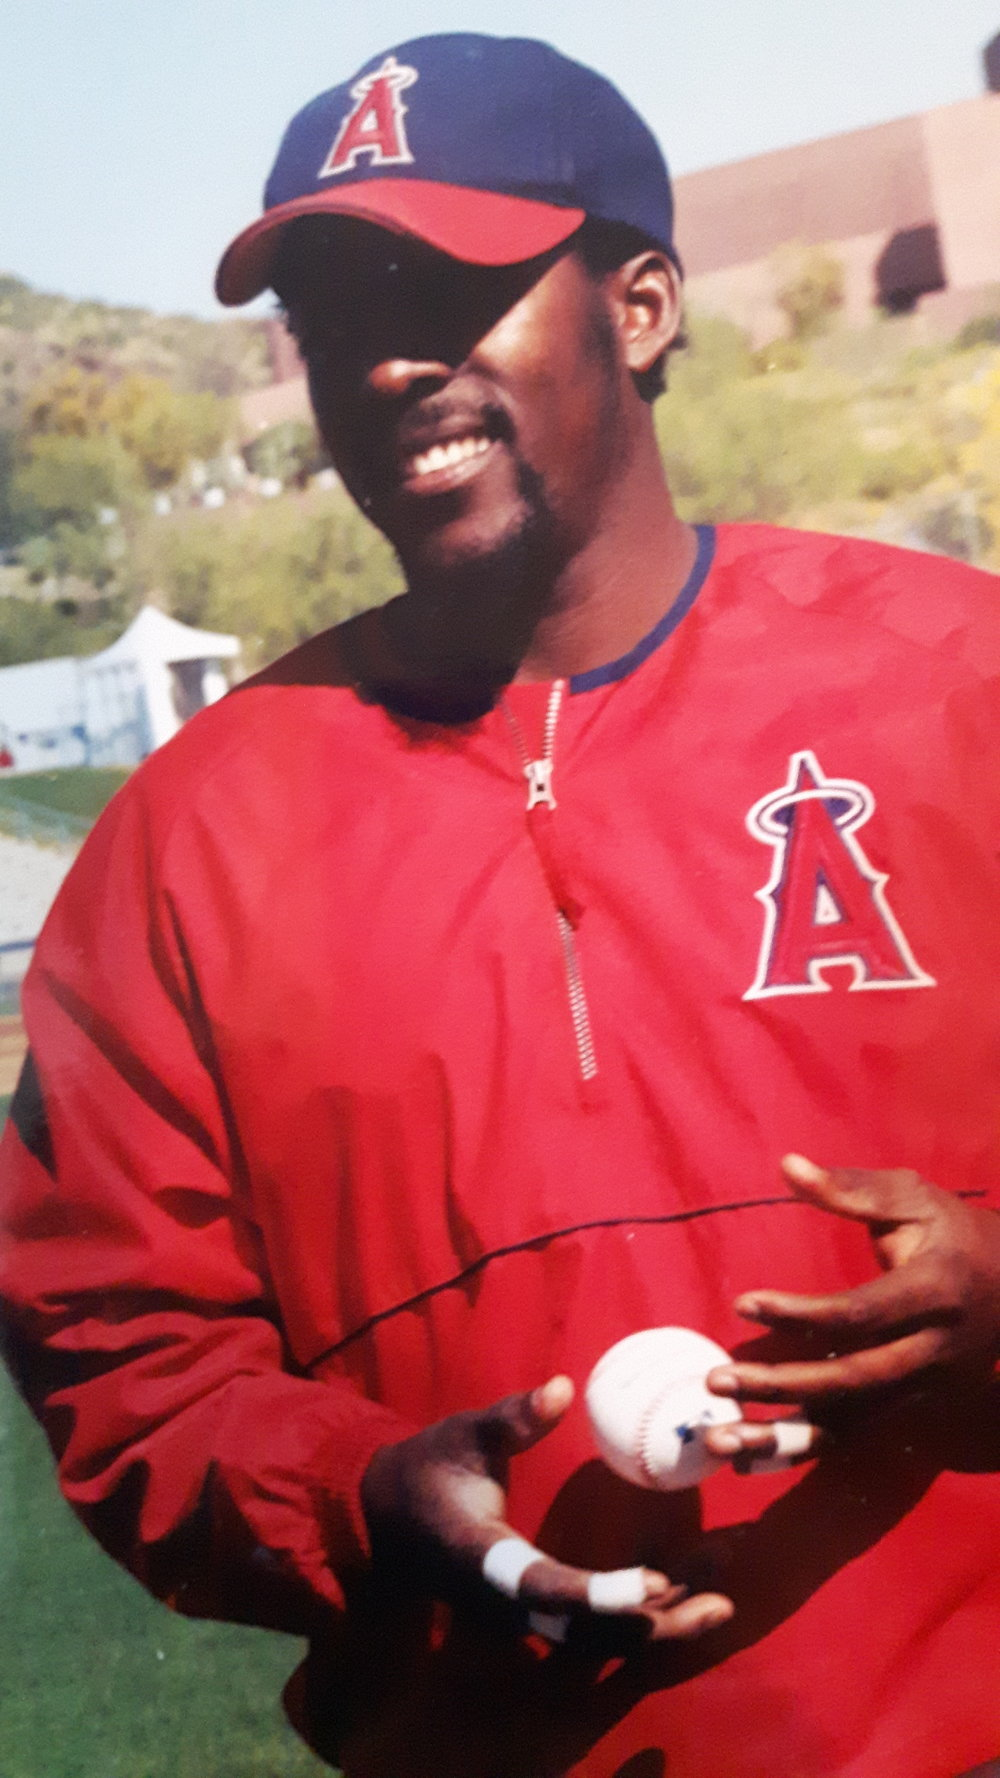 Montreal Expos legend Vladimir Guerrero has said he would like to go into the National Baseball Hall of Fame pictured in an Angels cap. Photo Credit: Danny Gallagher